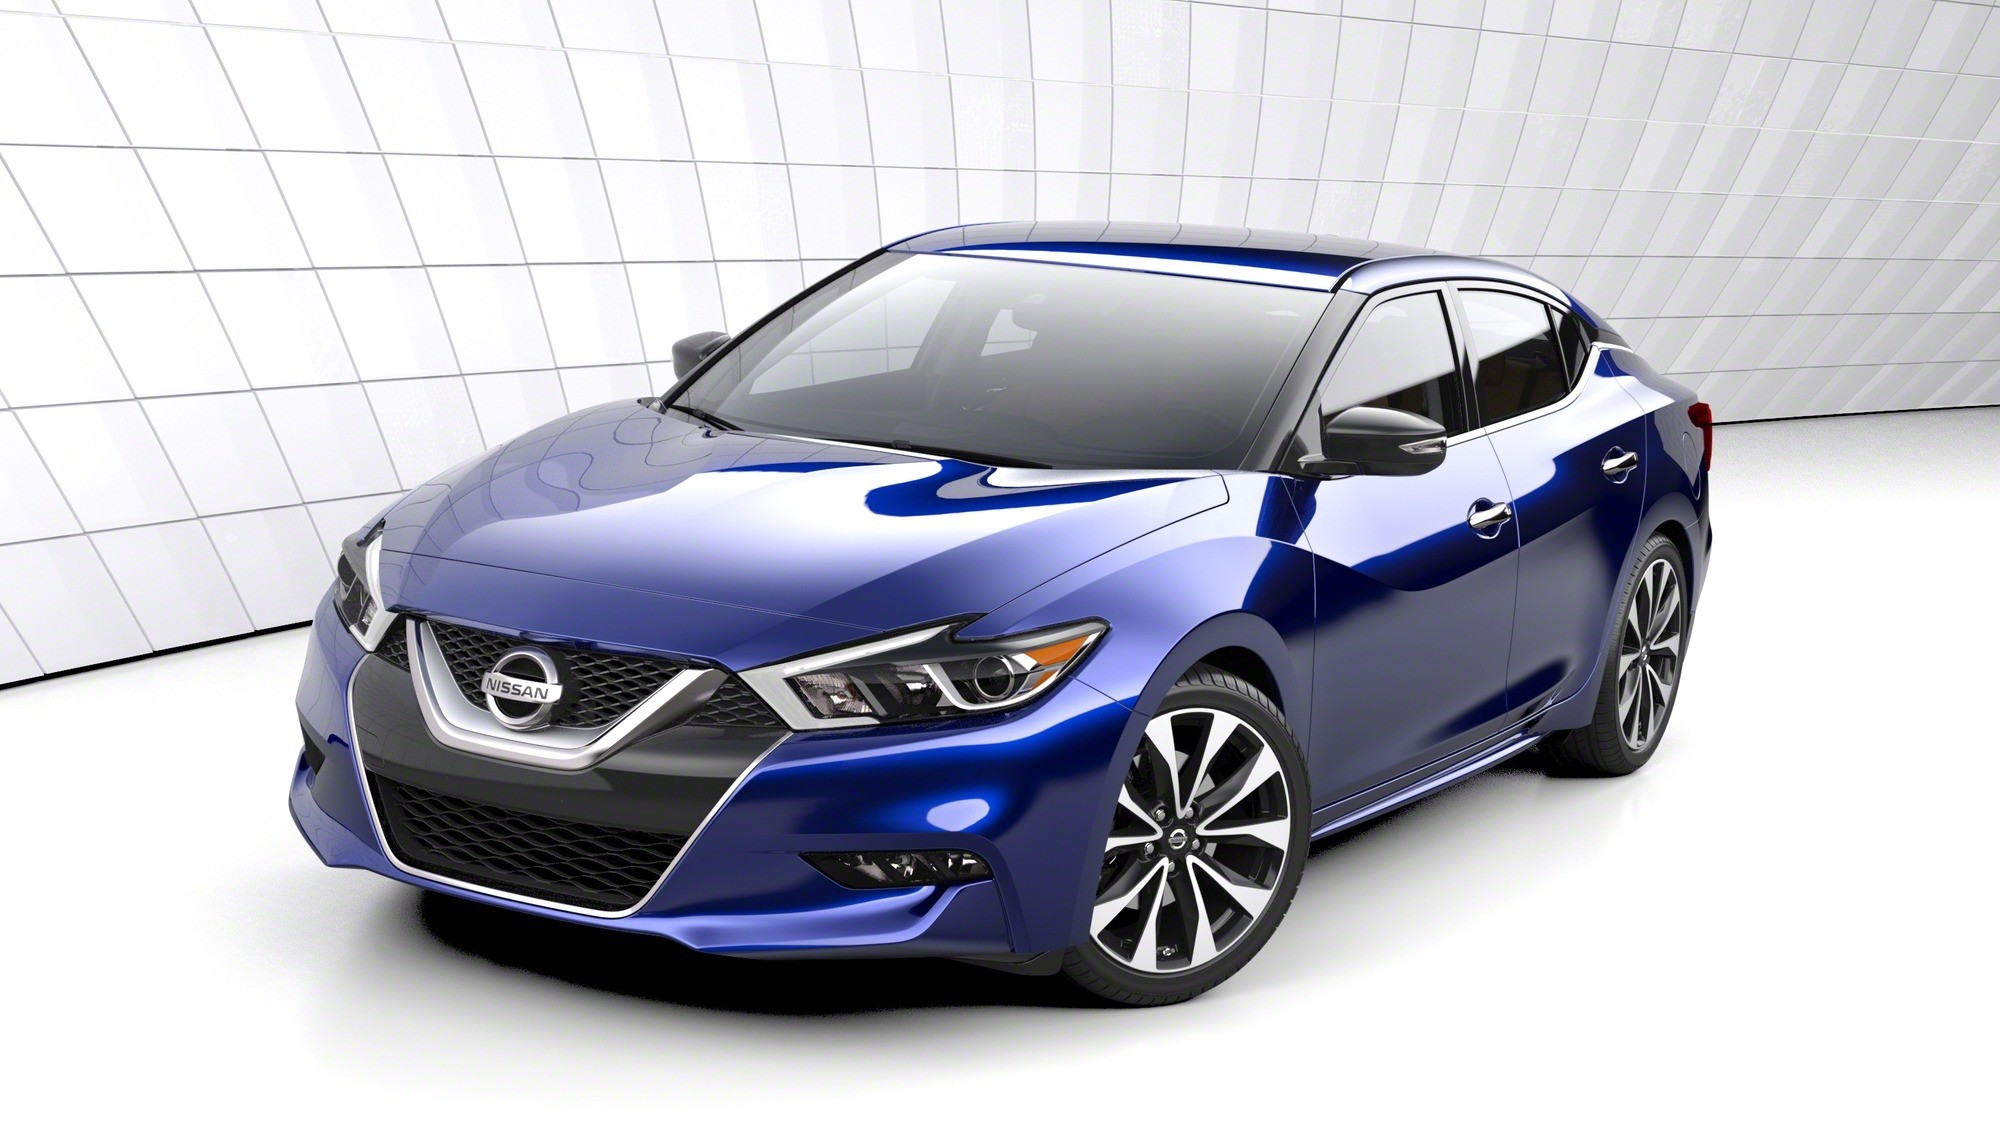 2016 nissan maxima revealed in new york prices start at 32 410 msrp autoevolution. Black Bedroom Furniture Sets. Home Design Ideas